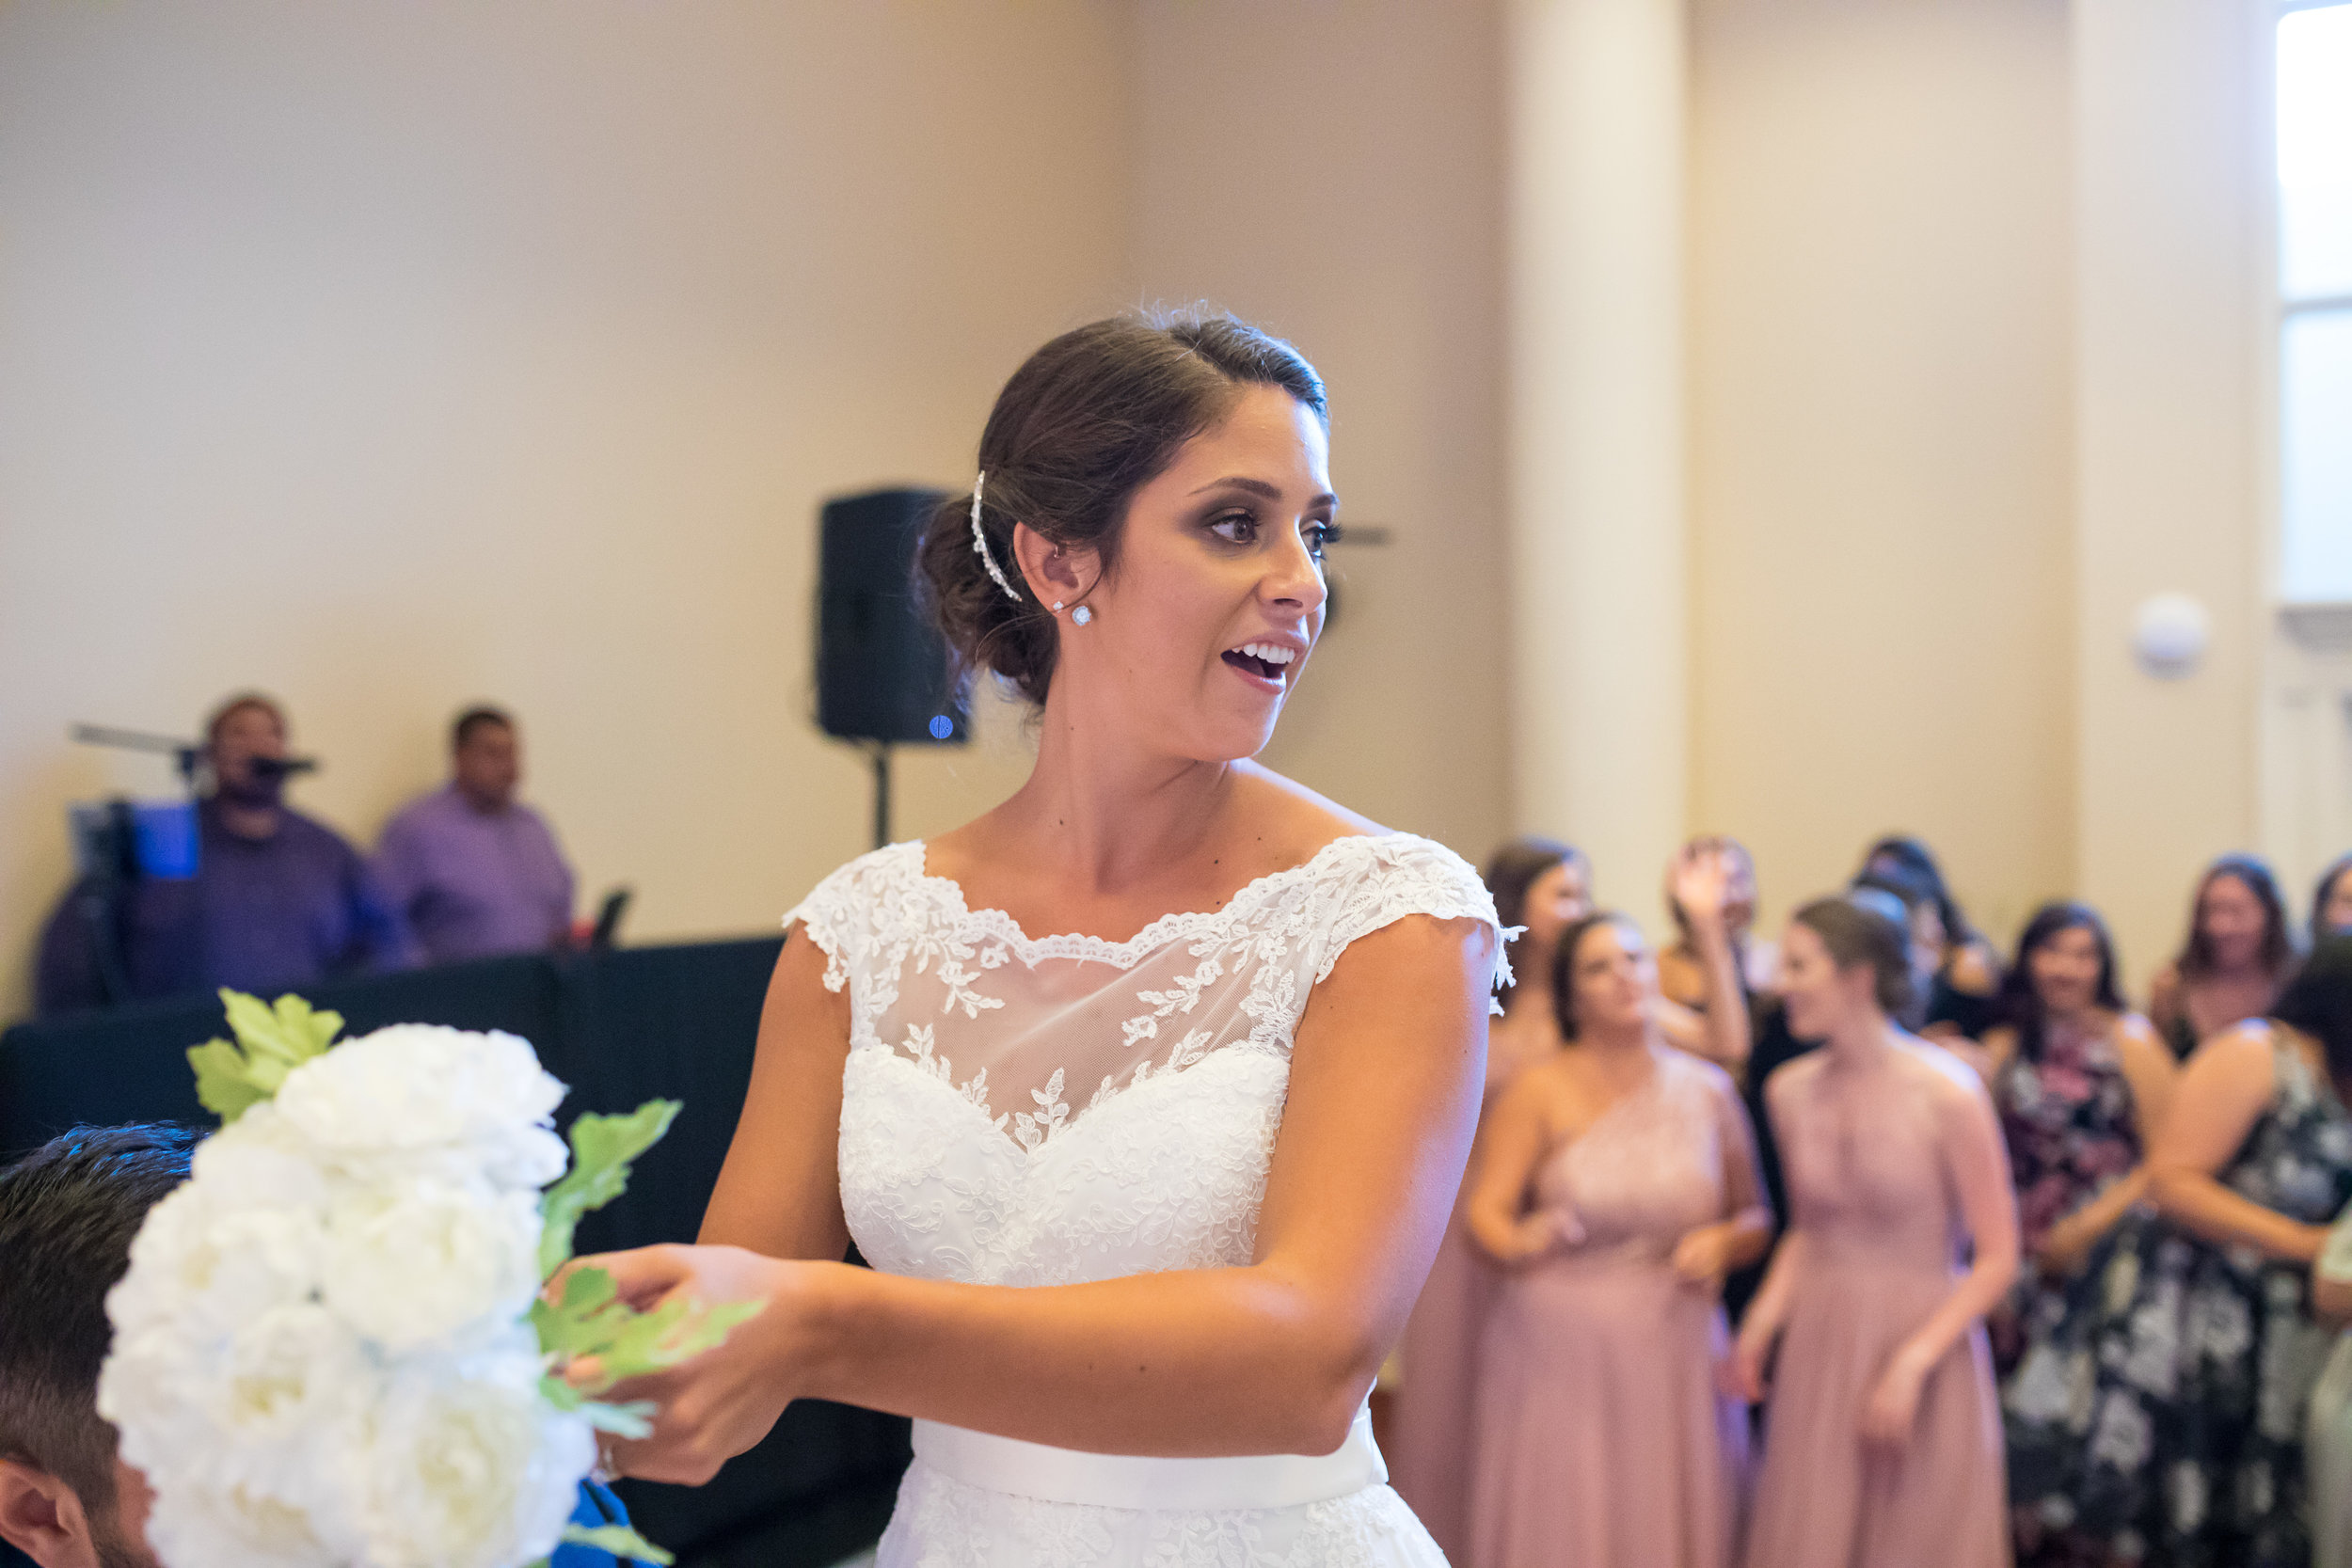 Perfectly Planned Moments Eugene Oregon Wedding Planner Downtown Athletic Club Bouquet Toss.jpg